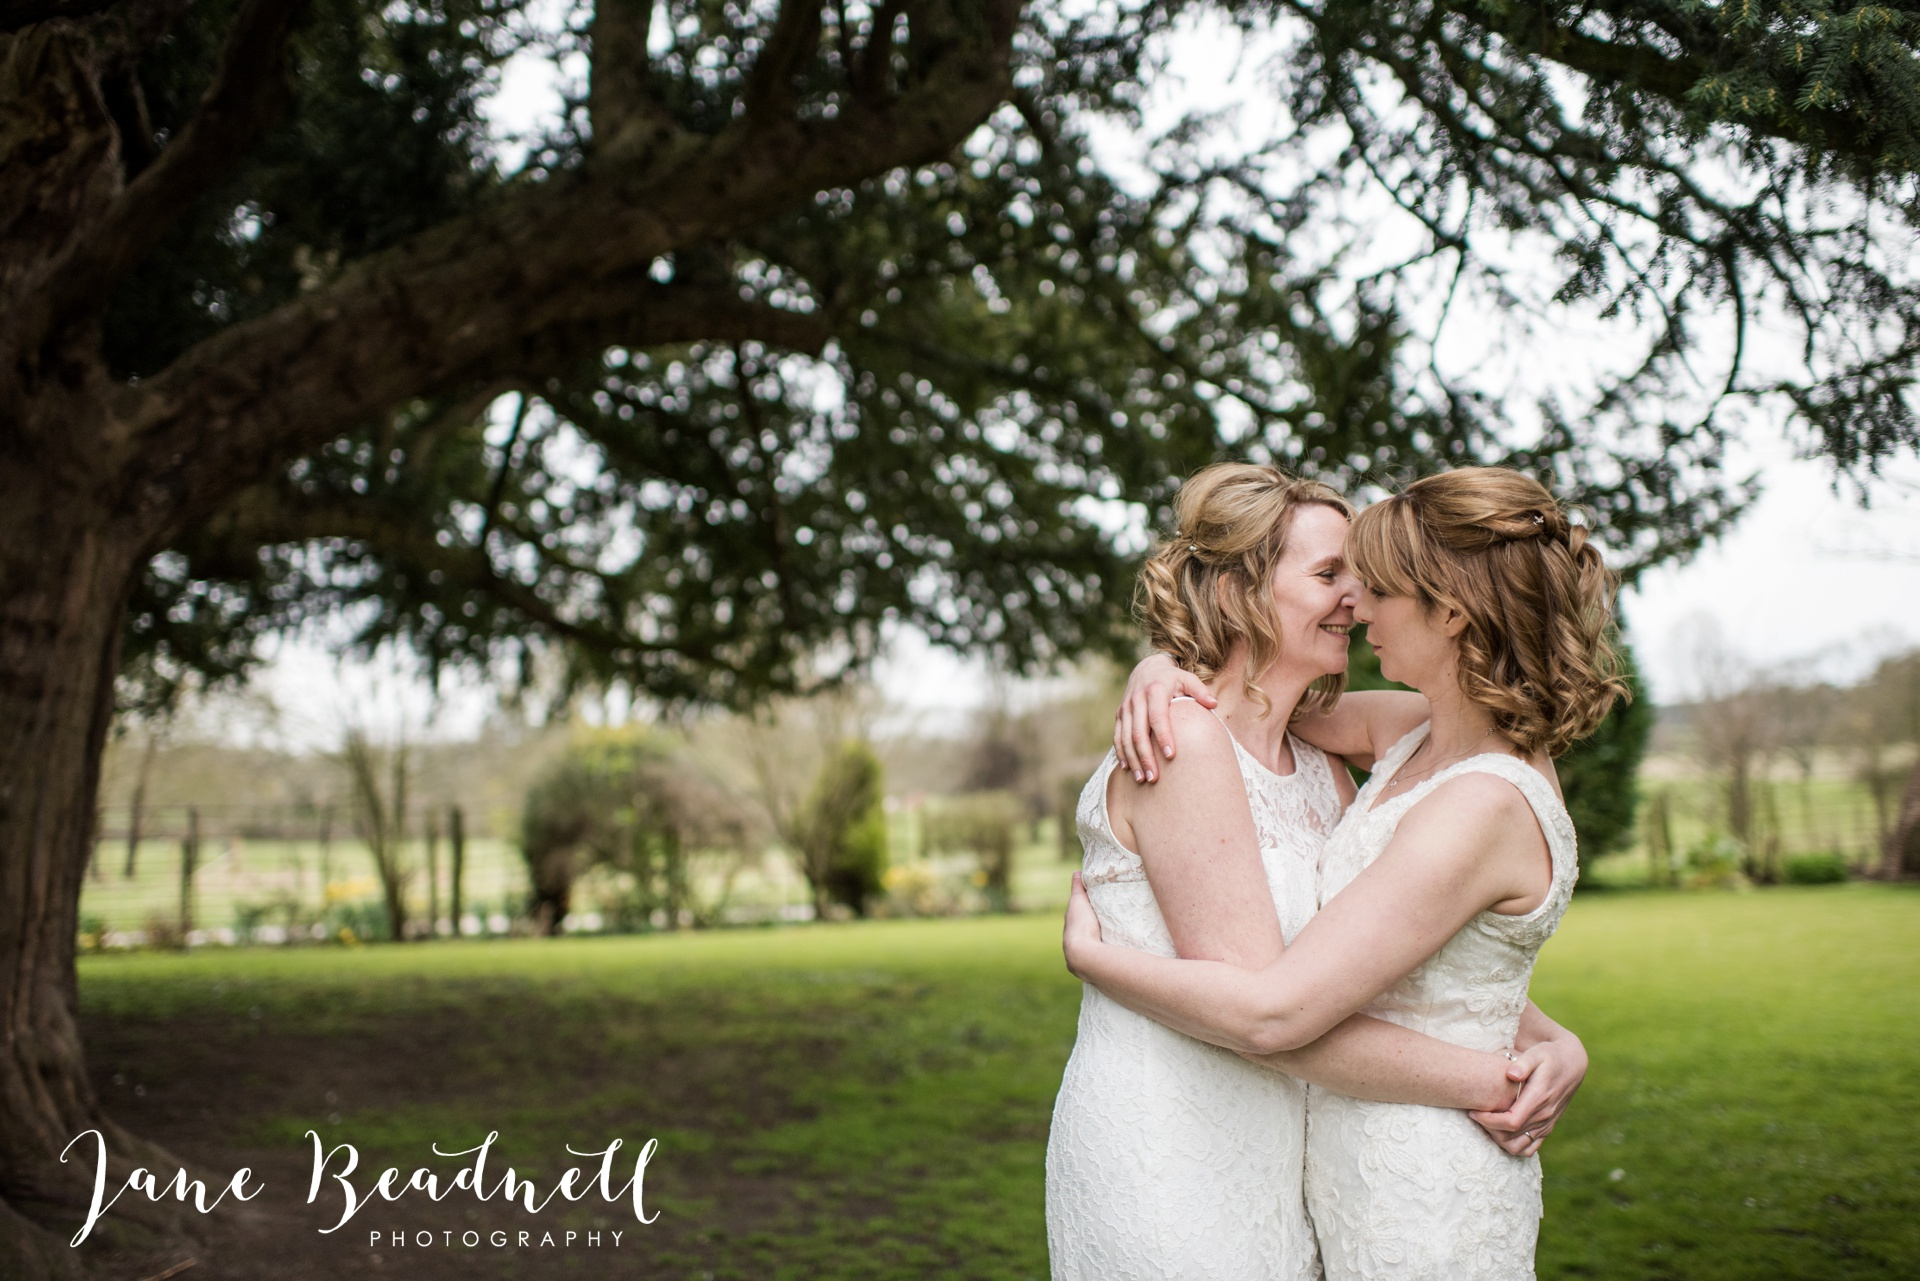 Burnby Hall Gardens wedding photography by Jane Beadnell Photography_0010